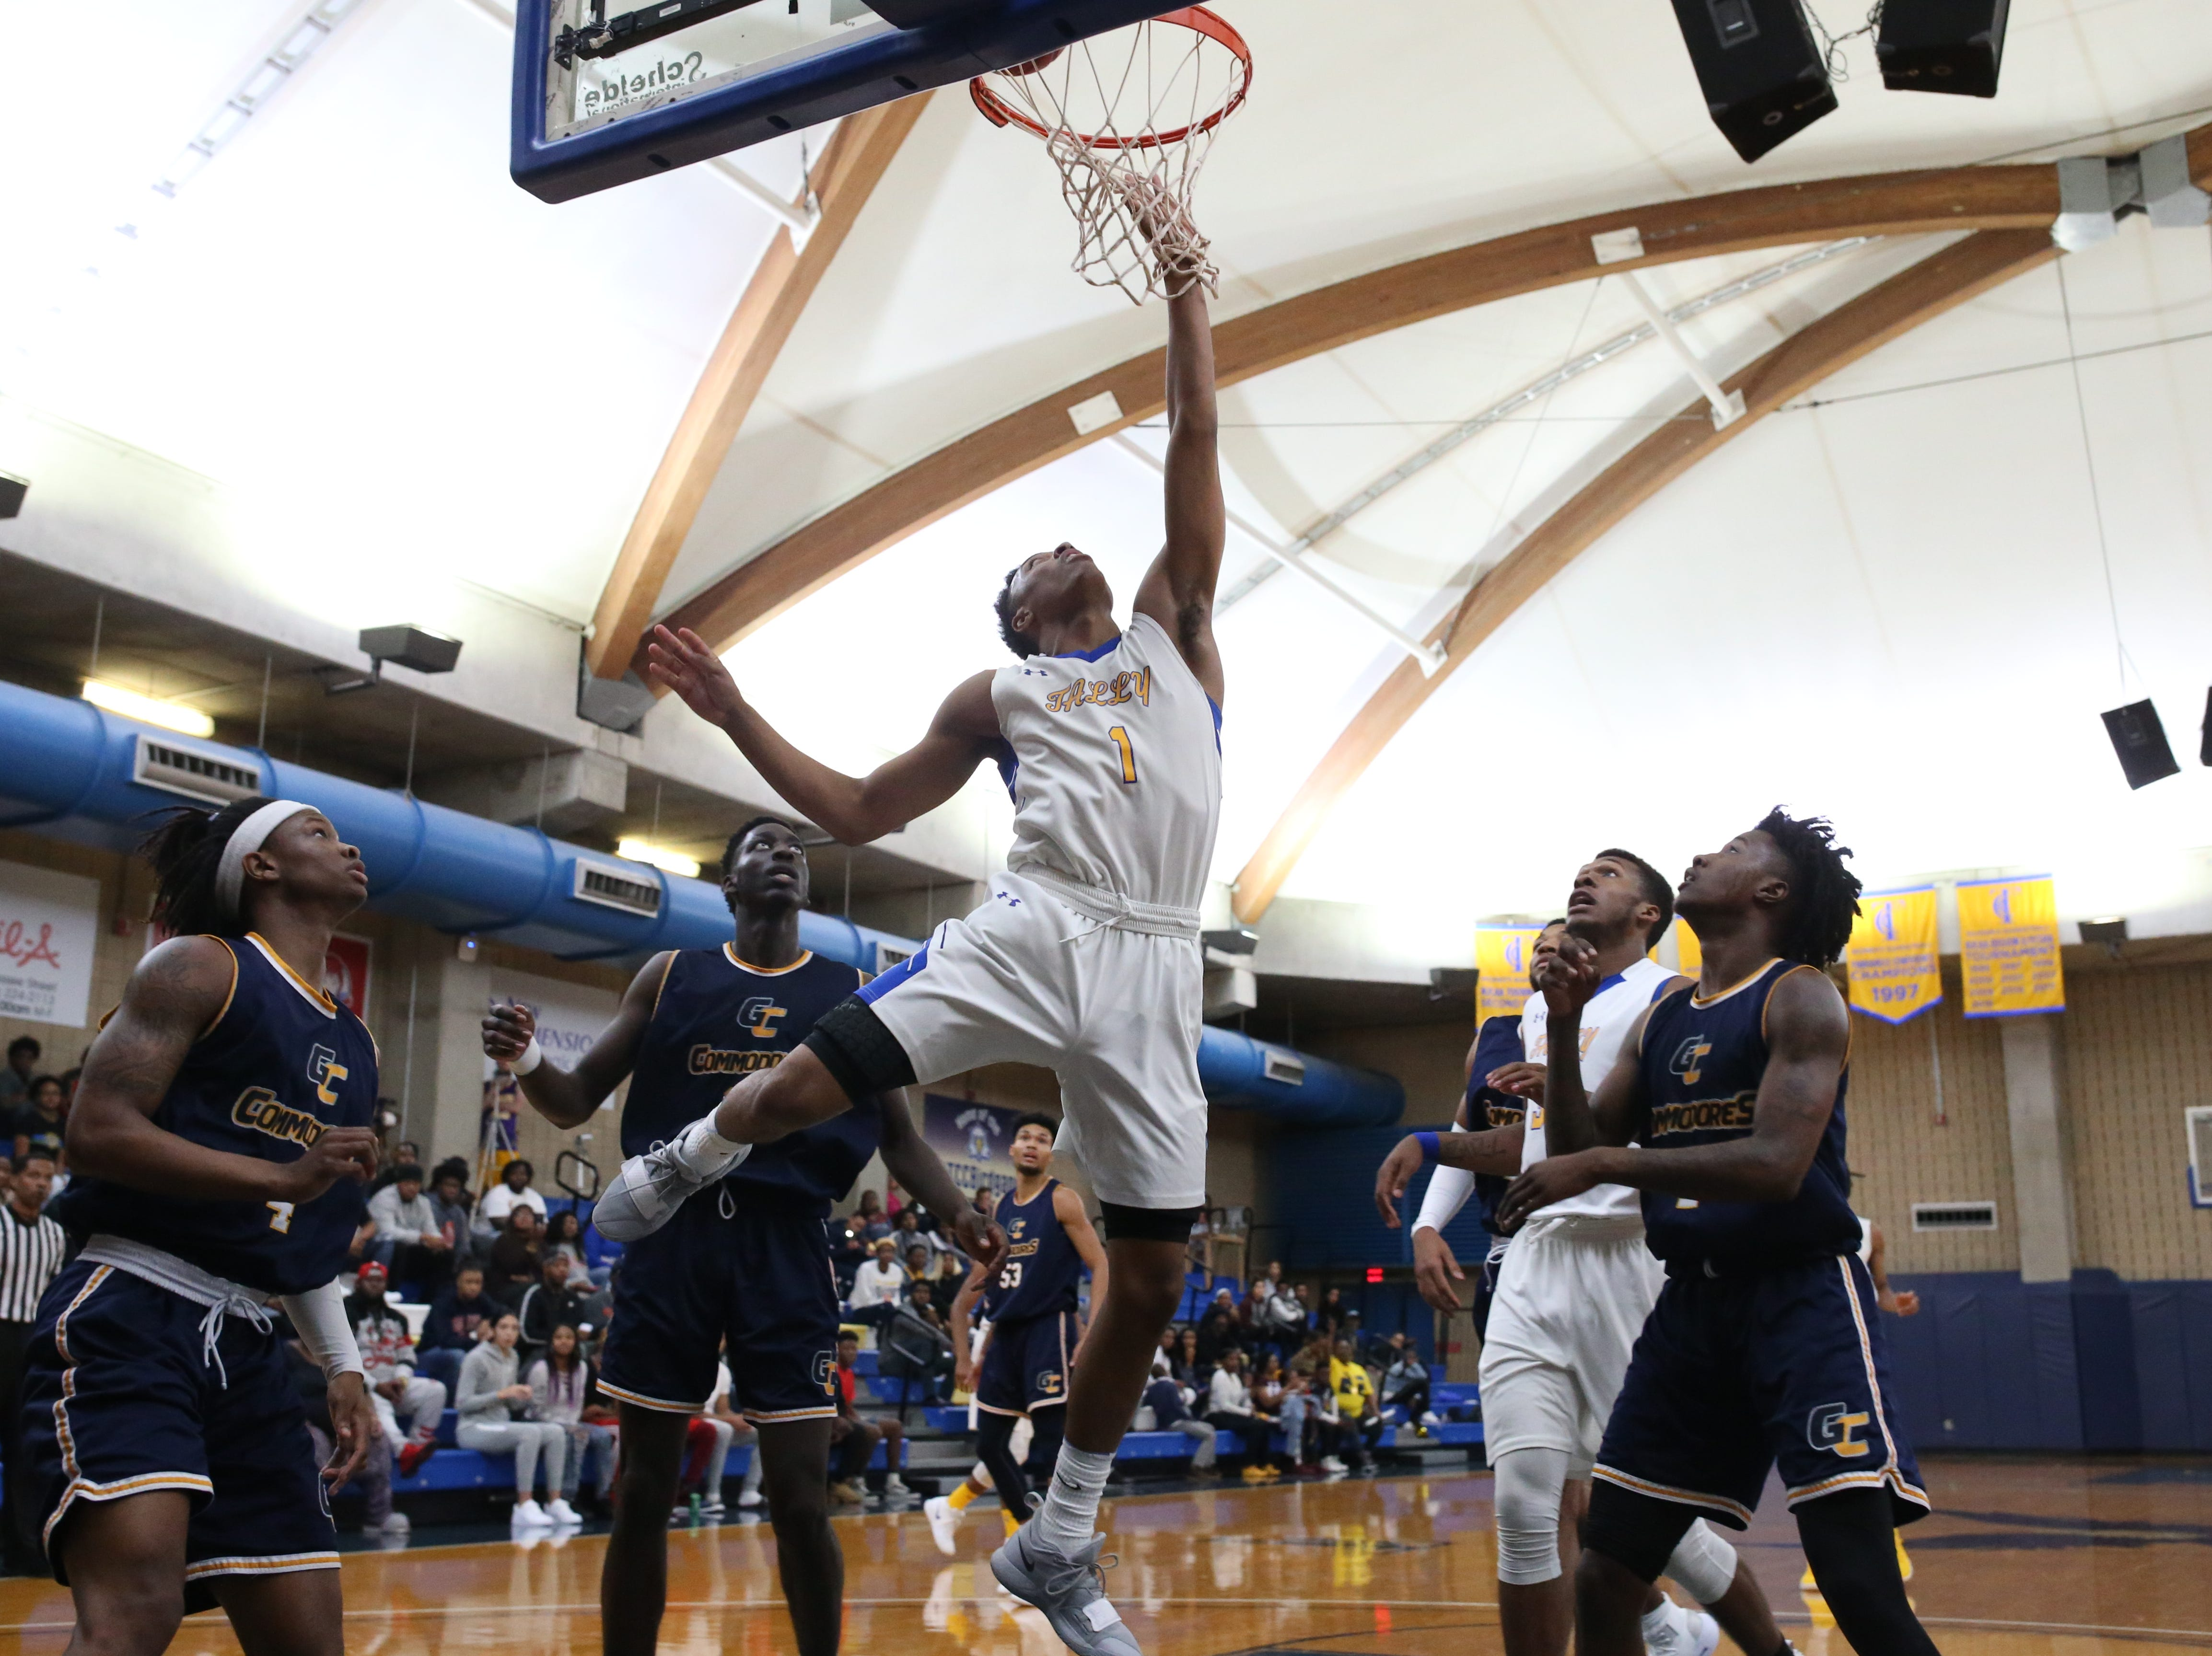 Tallahassee Community College Eagles guard Eric Boone (1) reaches for the rebound. The Tallahassee Community College Eagles host the Gulf Coast State College Commodores in a conference match-up in the Eagledome, Saturday, Jan. 5, 2019.